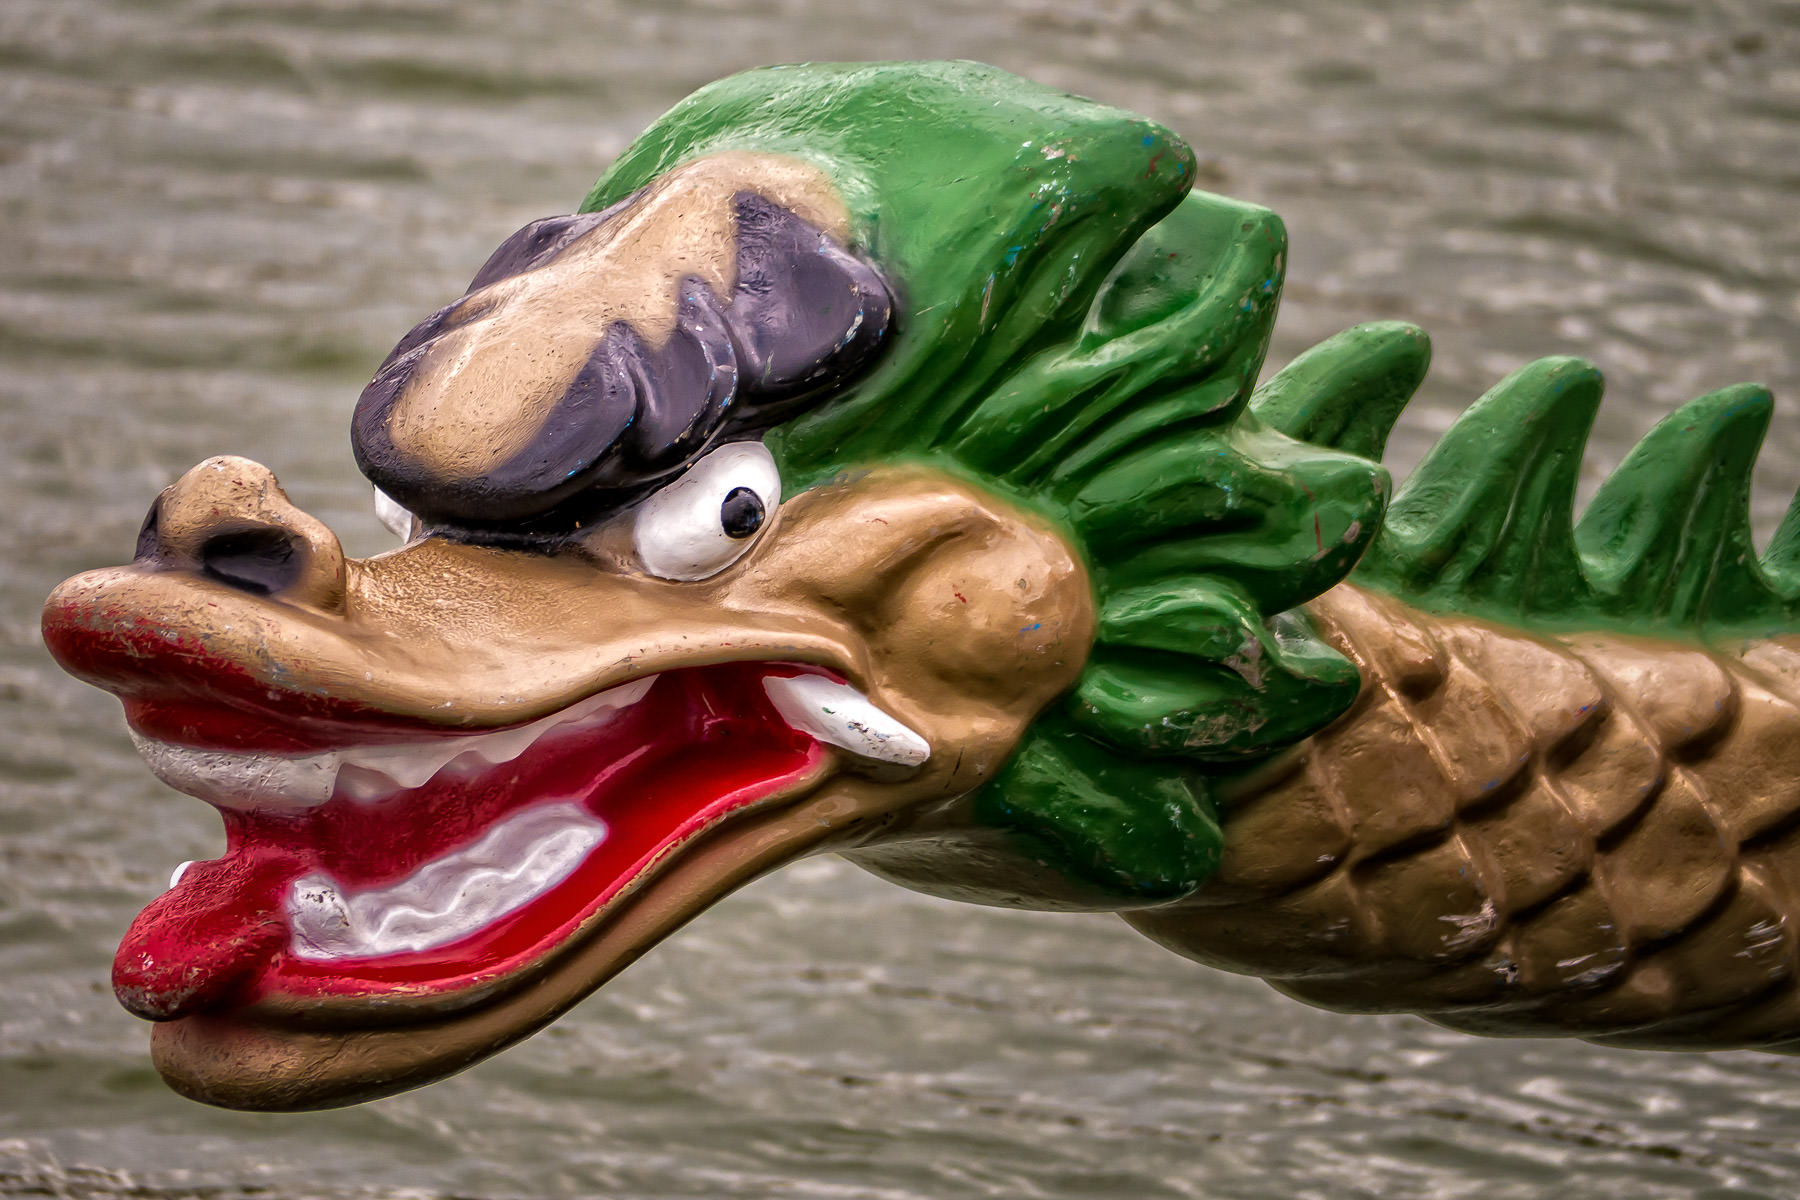 The figurehead on a dragon boat at the DFW Dragon Boat and Kite Festival, Las Colinas, Irving, Texas.